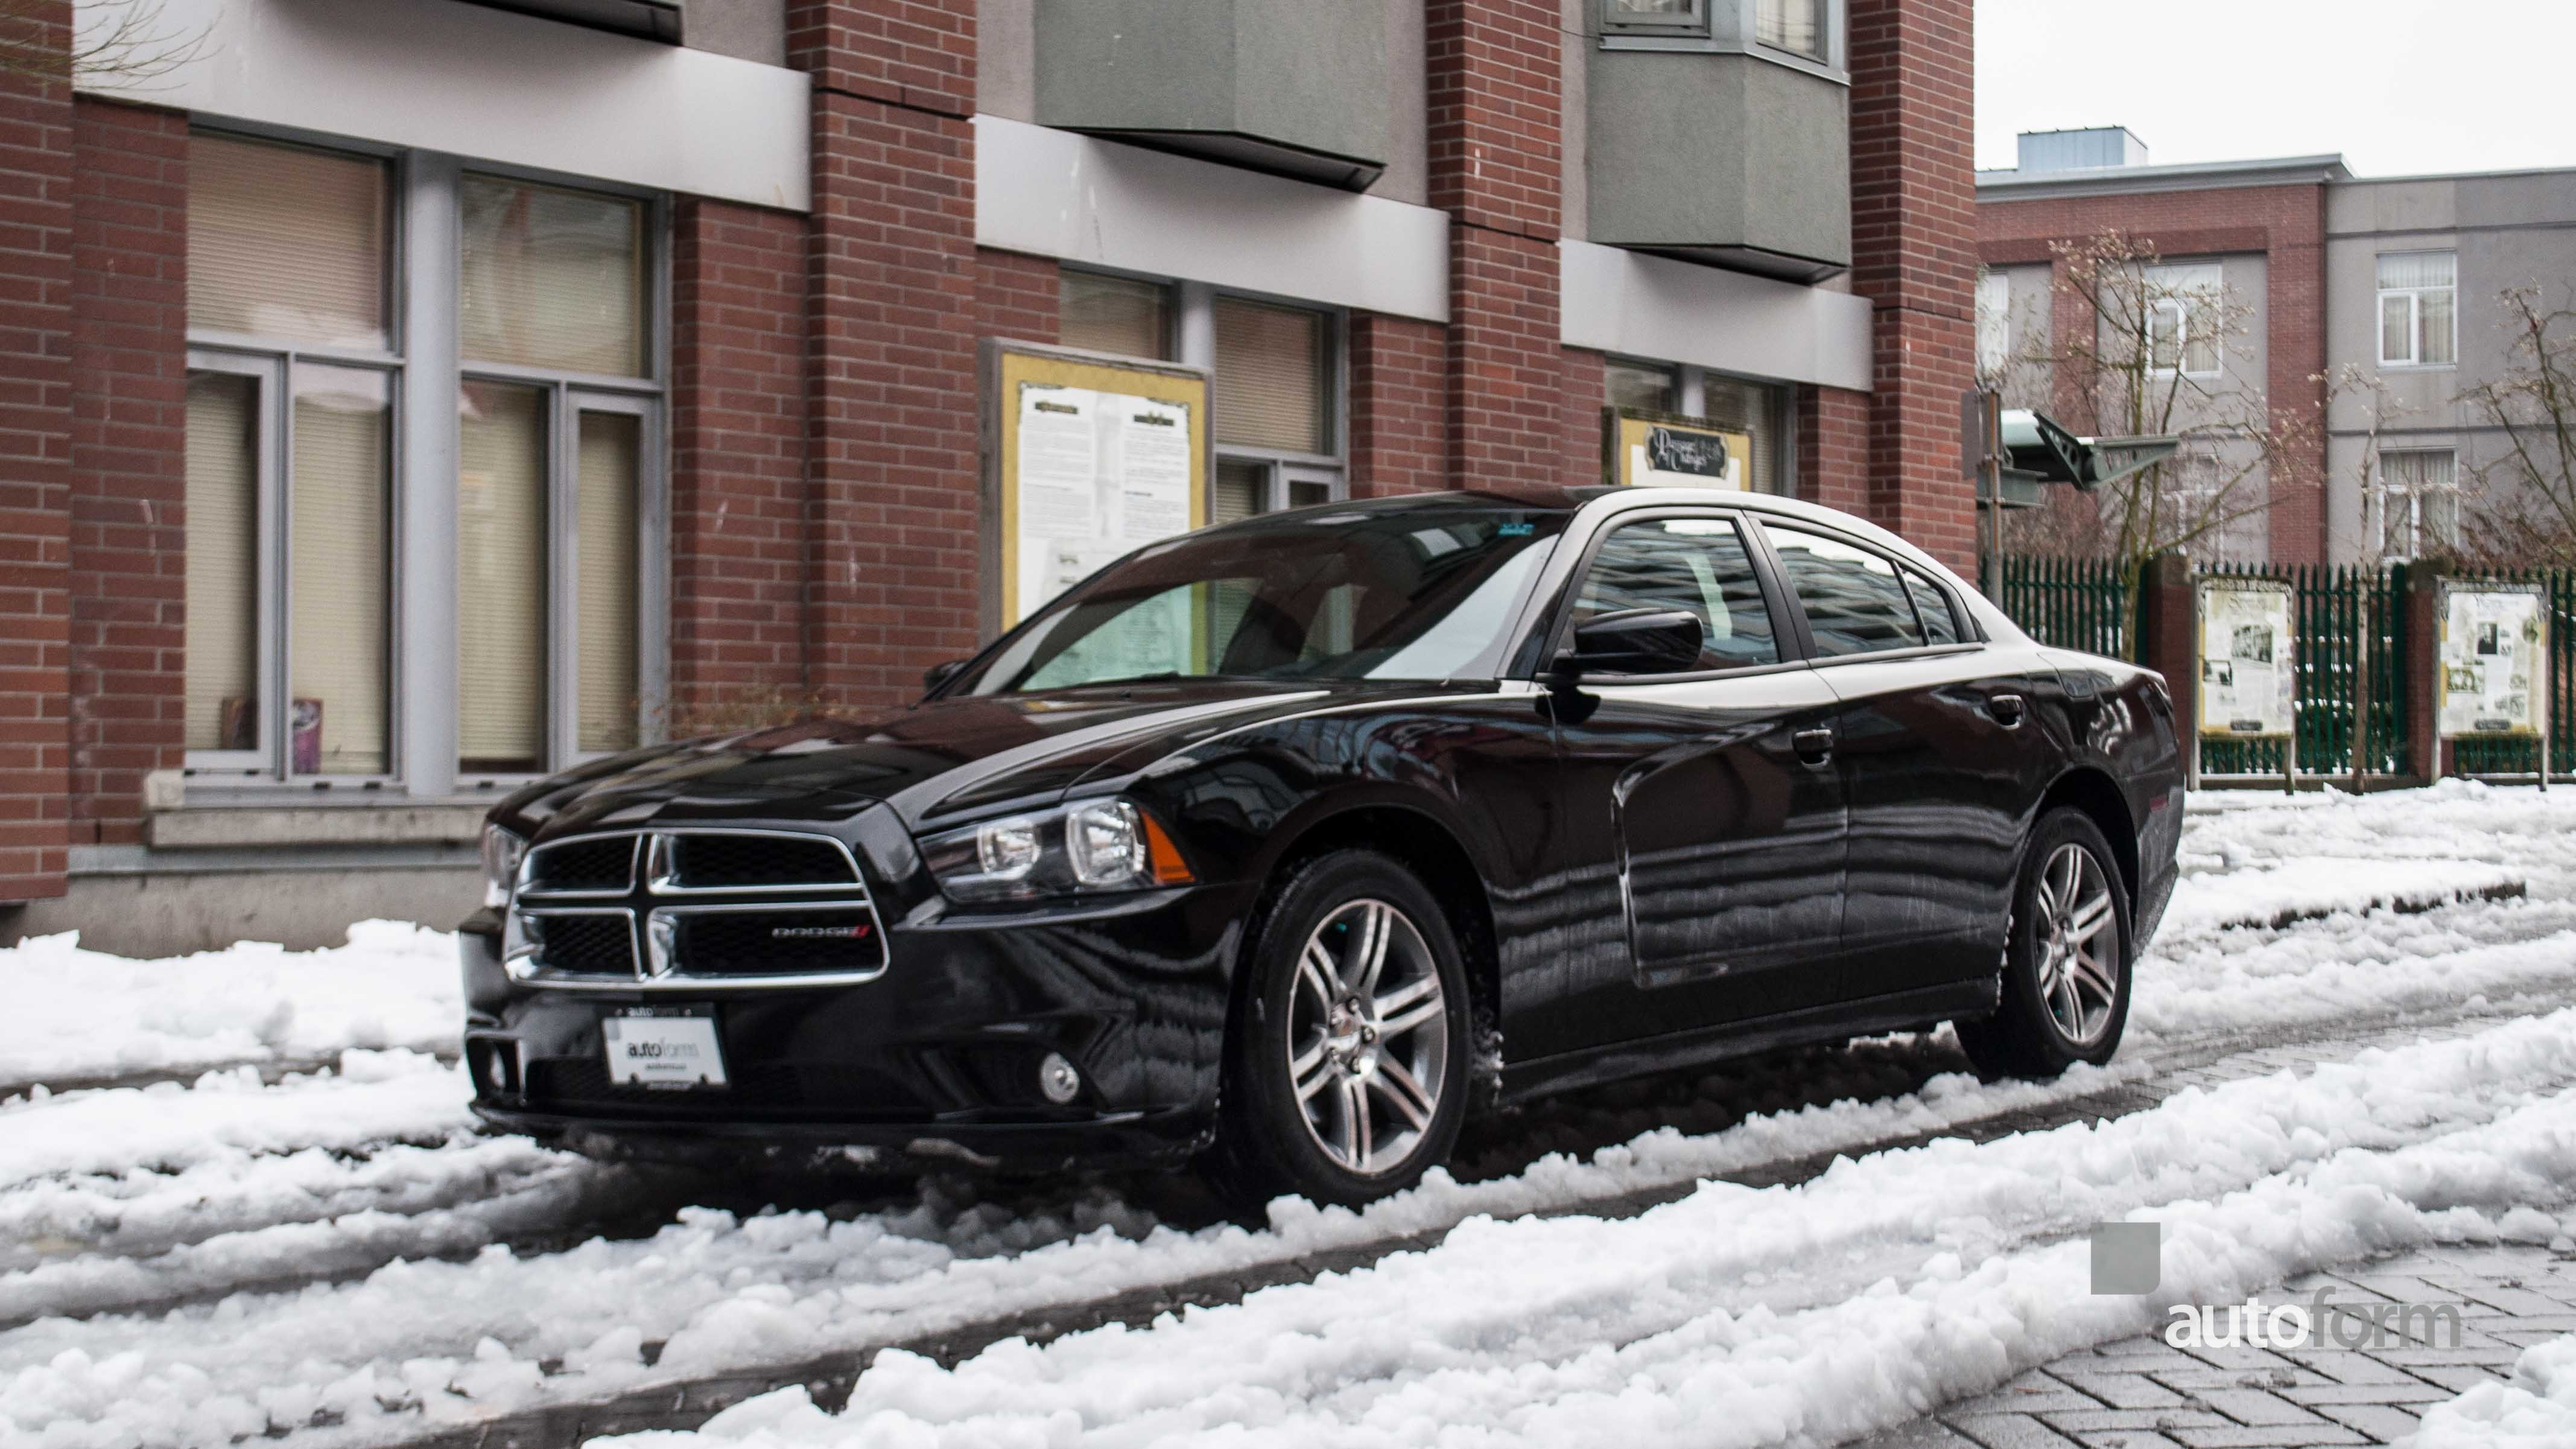 4408 2aabf9d3f3232013 dodge charger vancouver autoform1